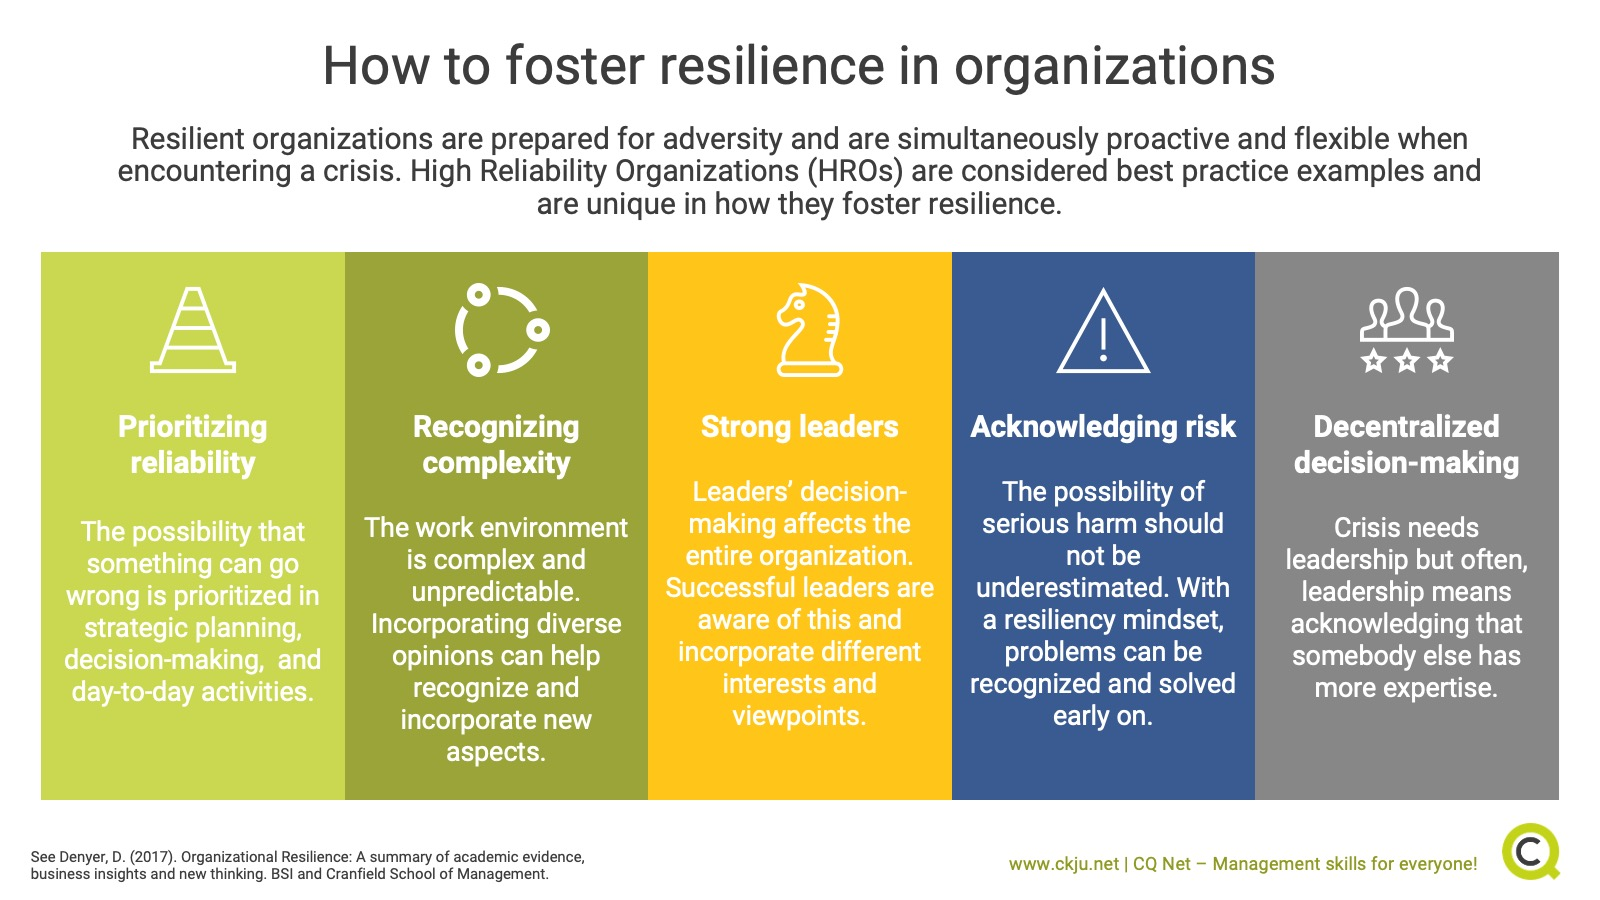 How to foster resilience in organizations